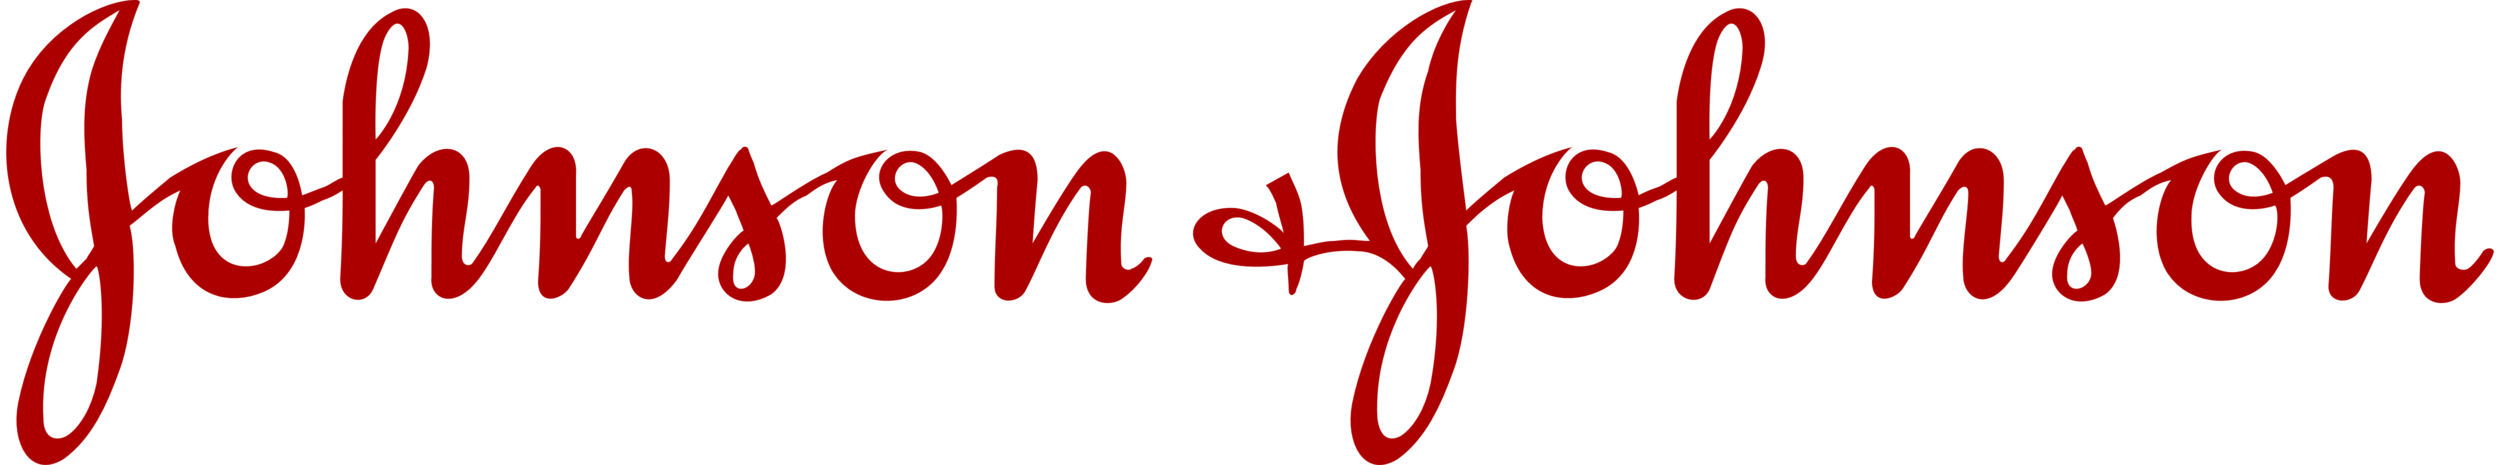 j-j-logo-transparent.png